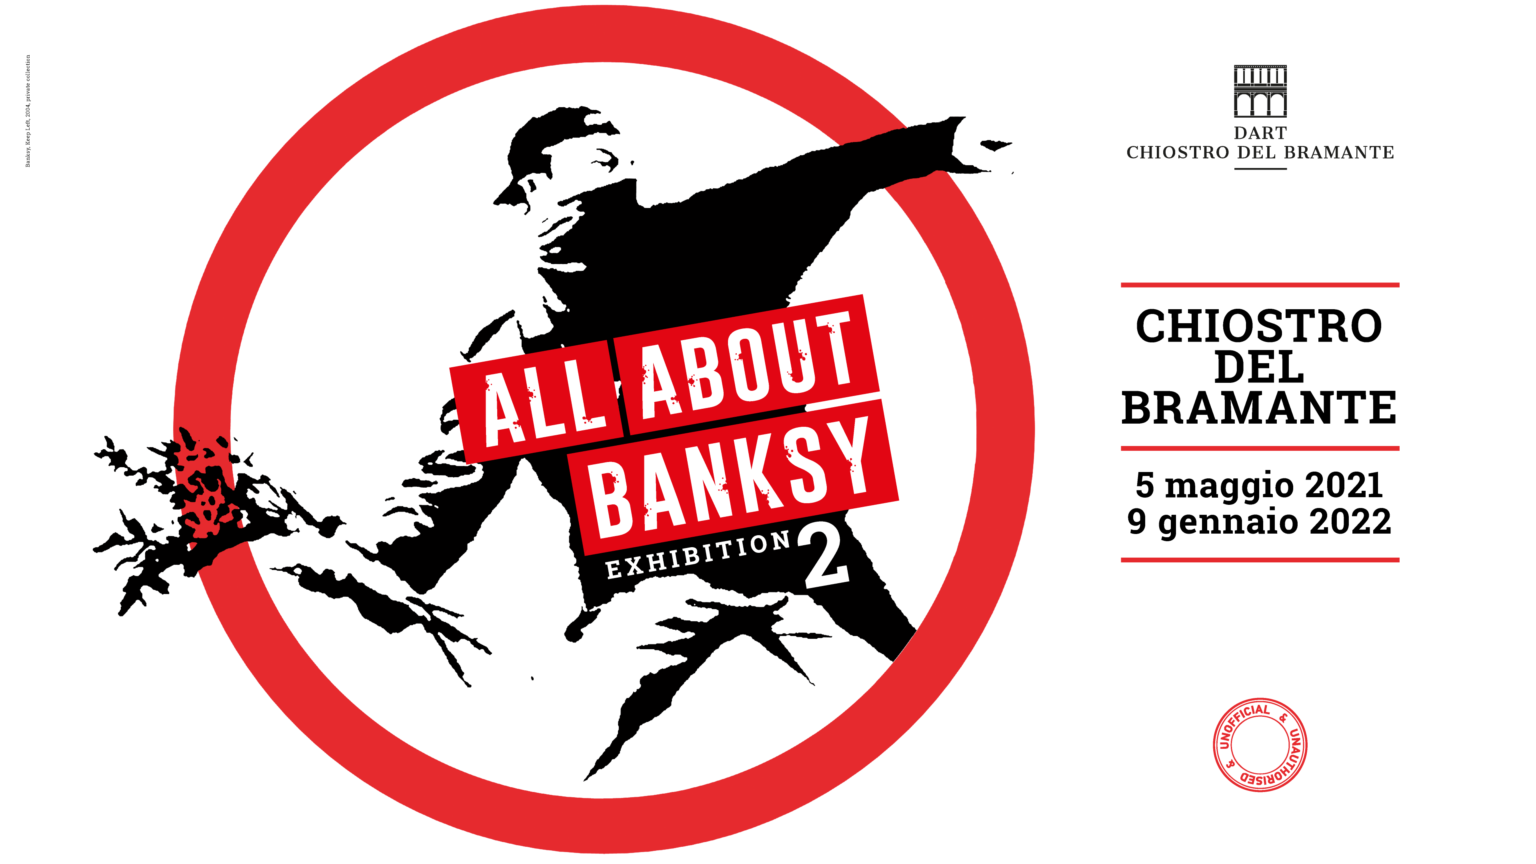 All about Banksy: exhibition 2